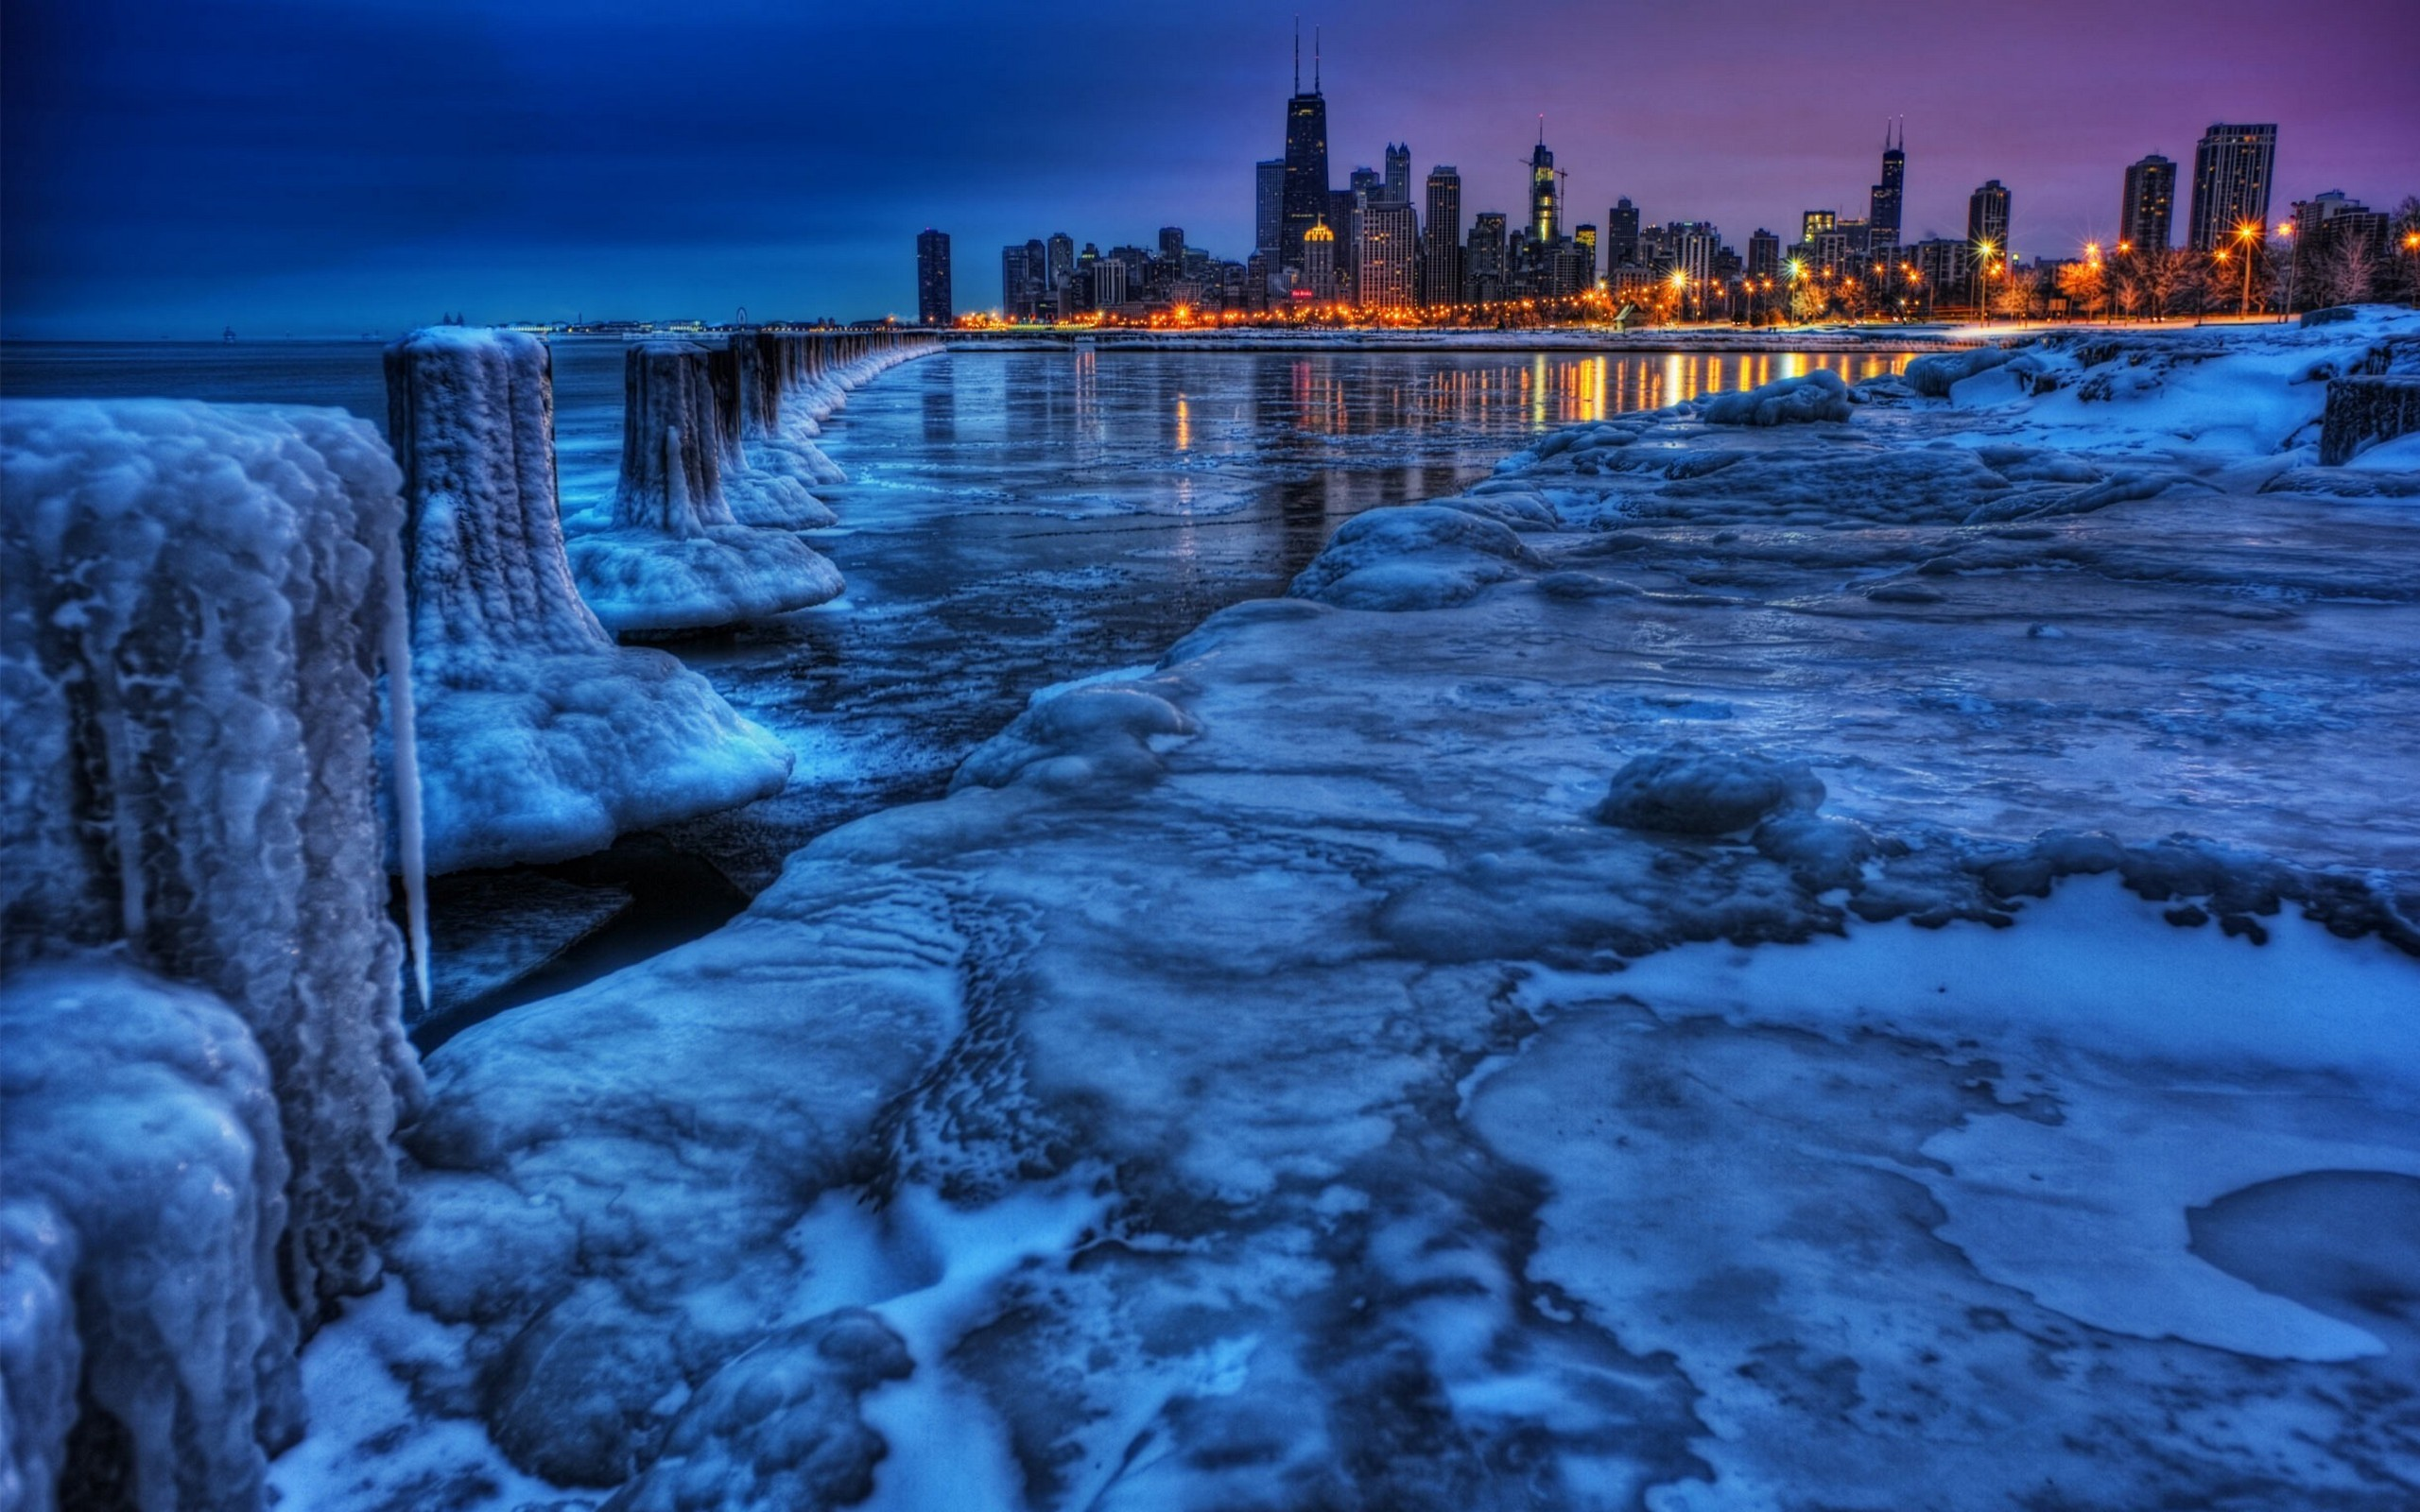 Frozen Chicago Illinois   Wallpaper 36117 2560x1600